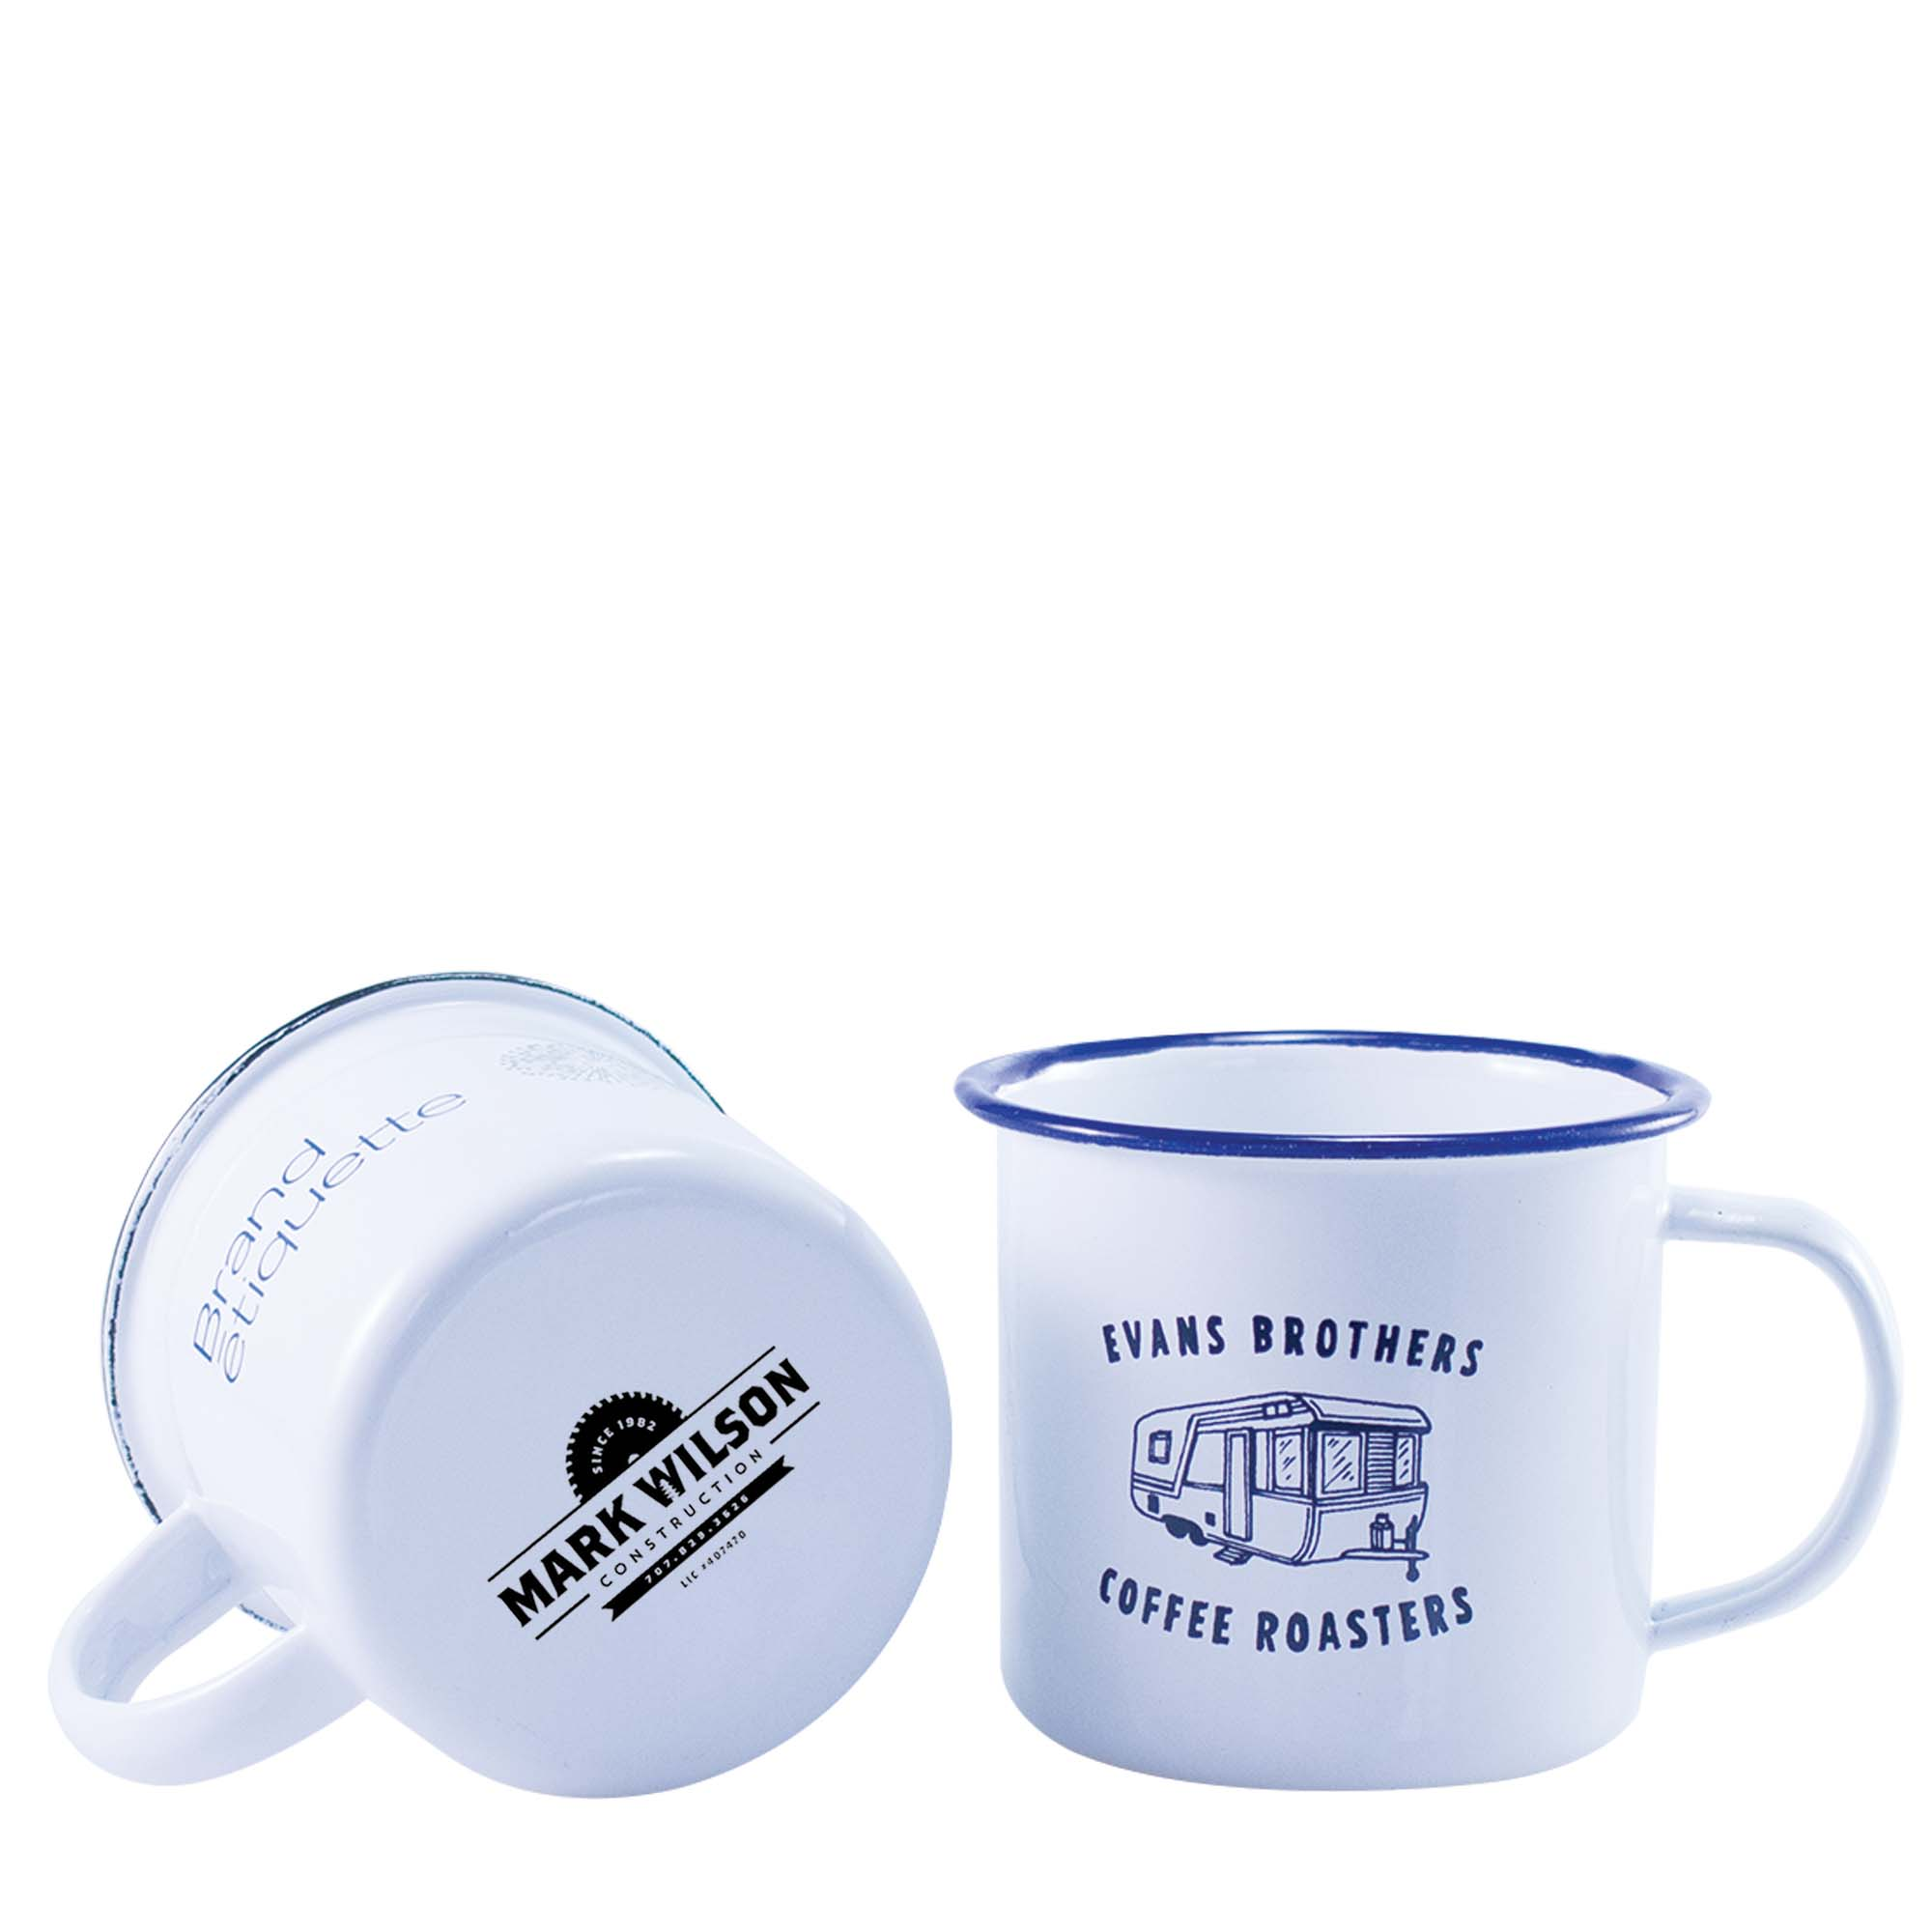 mug emaille blanc mug publicitaire vintage 285ml zoom objets publicitaires personnalis s. Black Bedroom Furniture Sets. Home Design Ideas